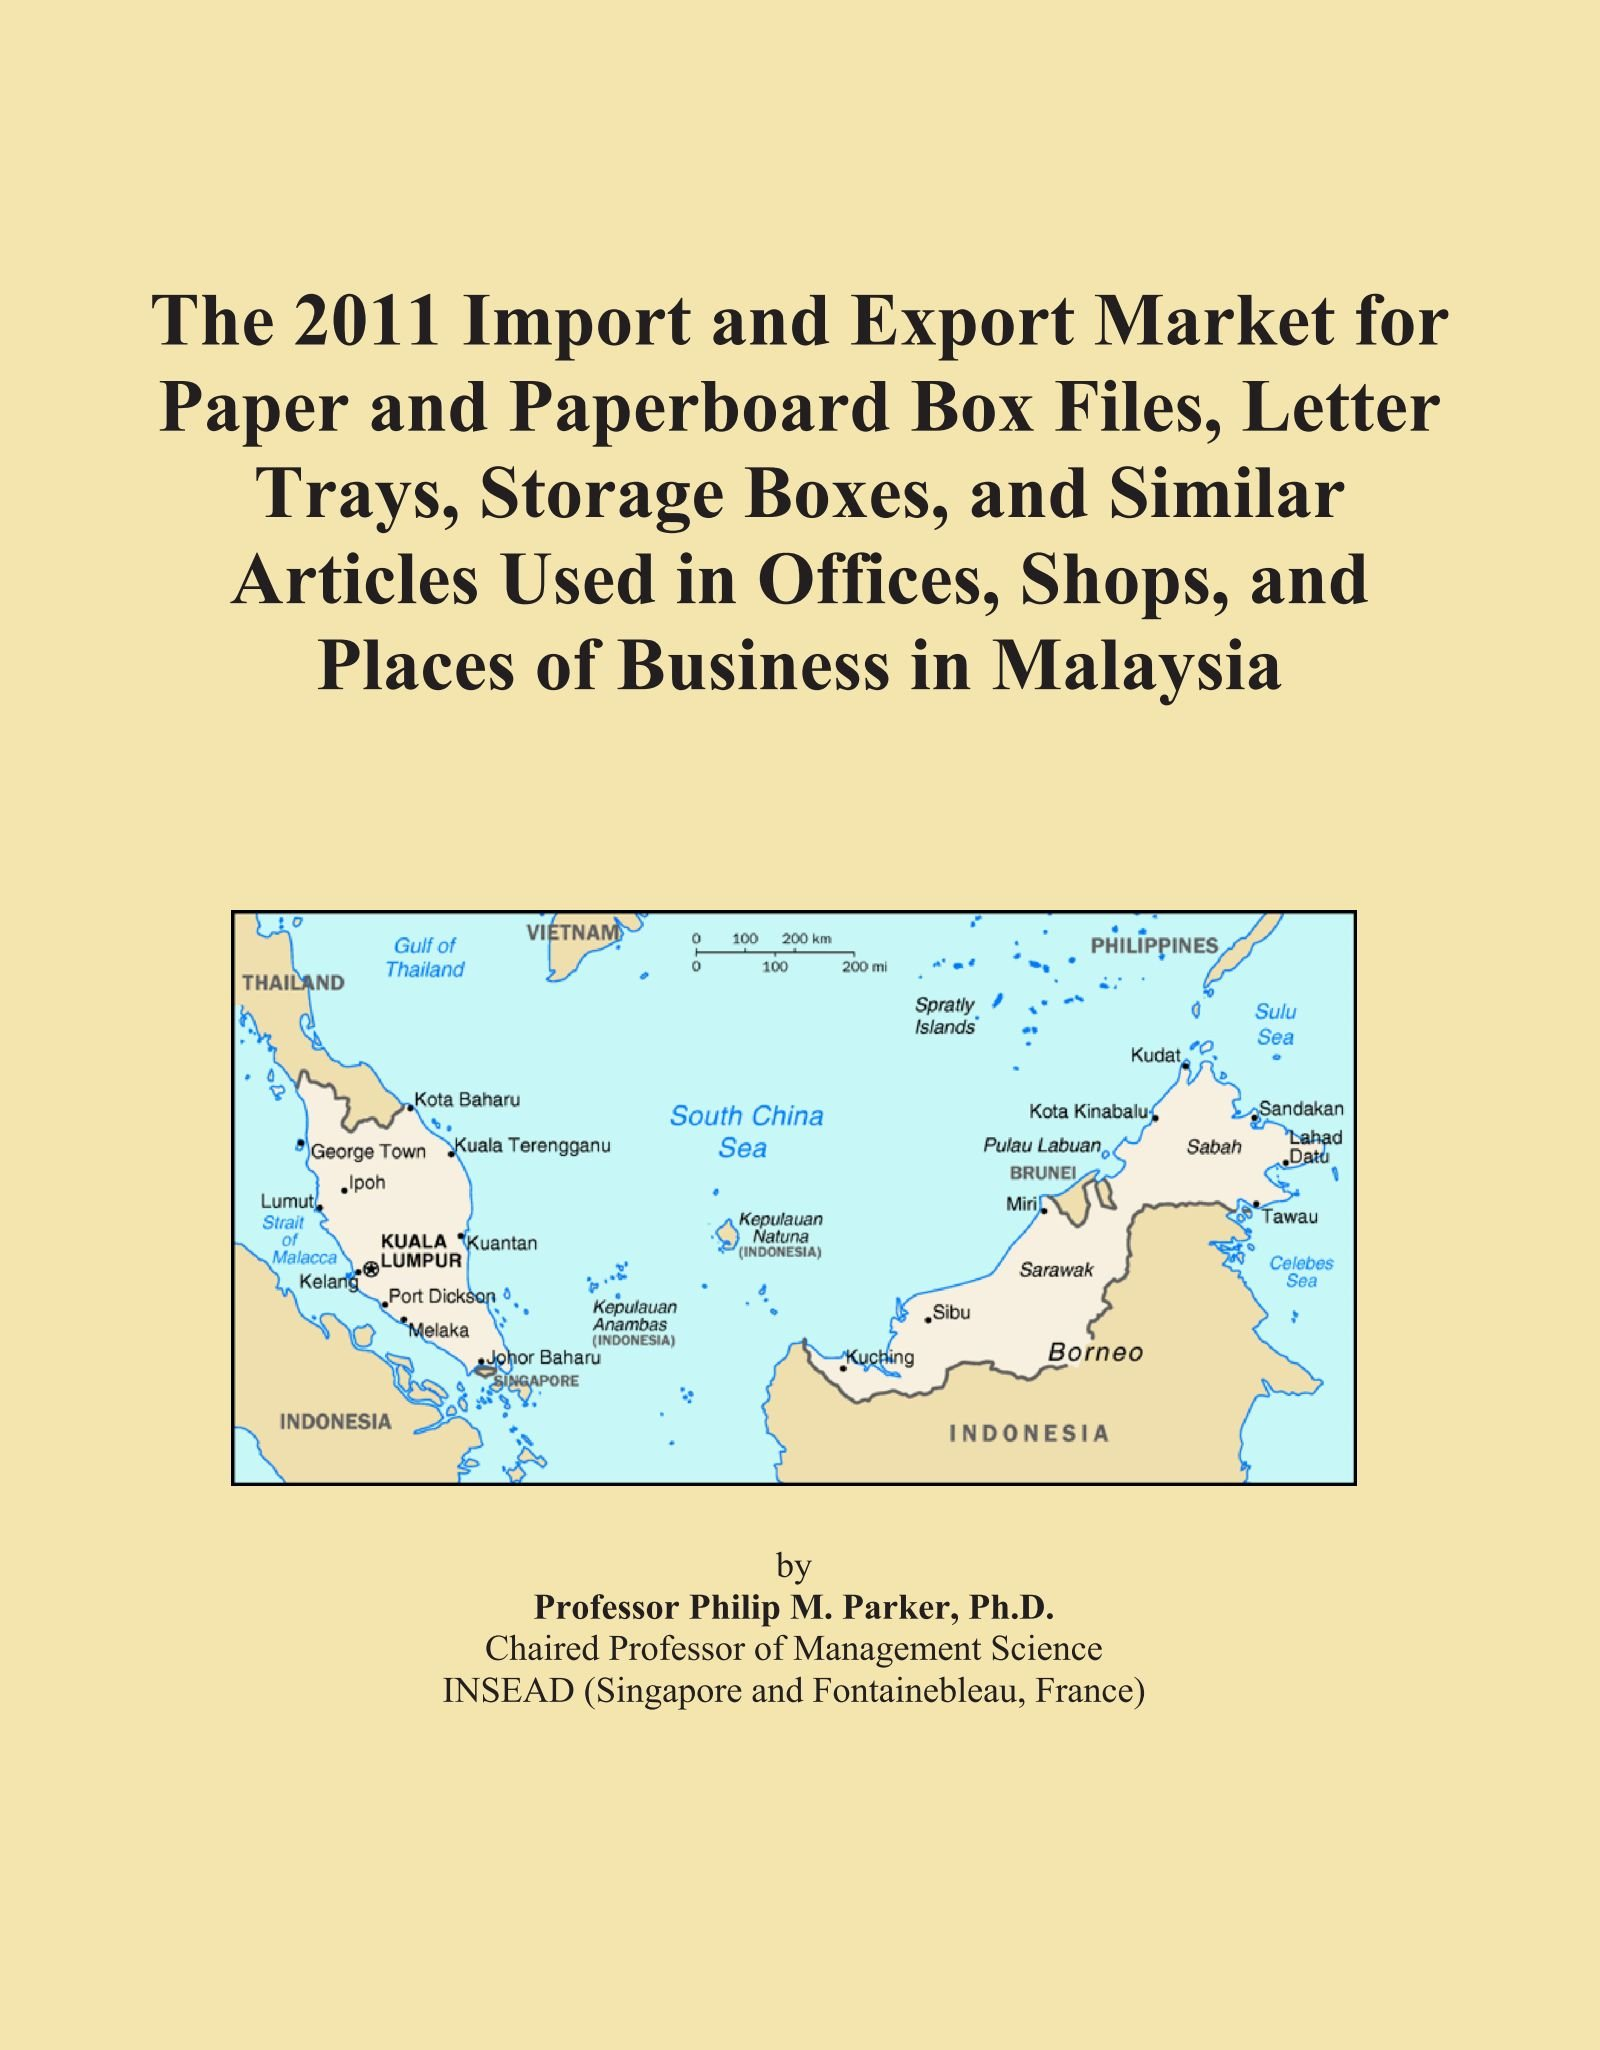 Download The 2011 Import and Export Market for Paper and Paperboard Box Files, Letter Trays, Storage Boxes, and Similar Articles Used in Offices, Shops, and Places of Business in Malaysia PDF